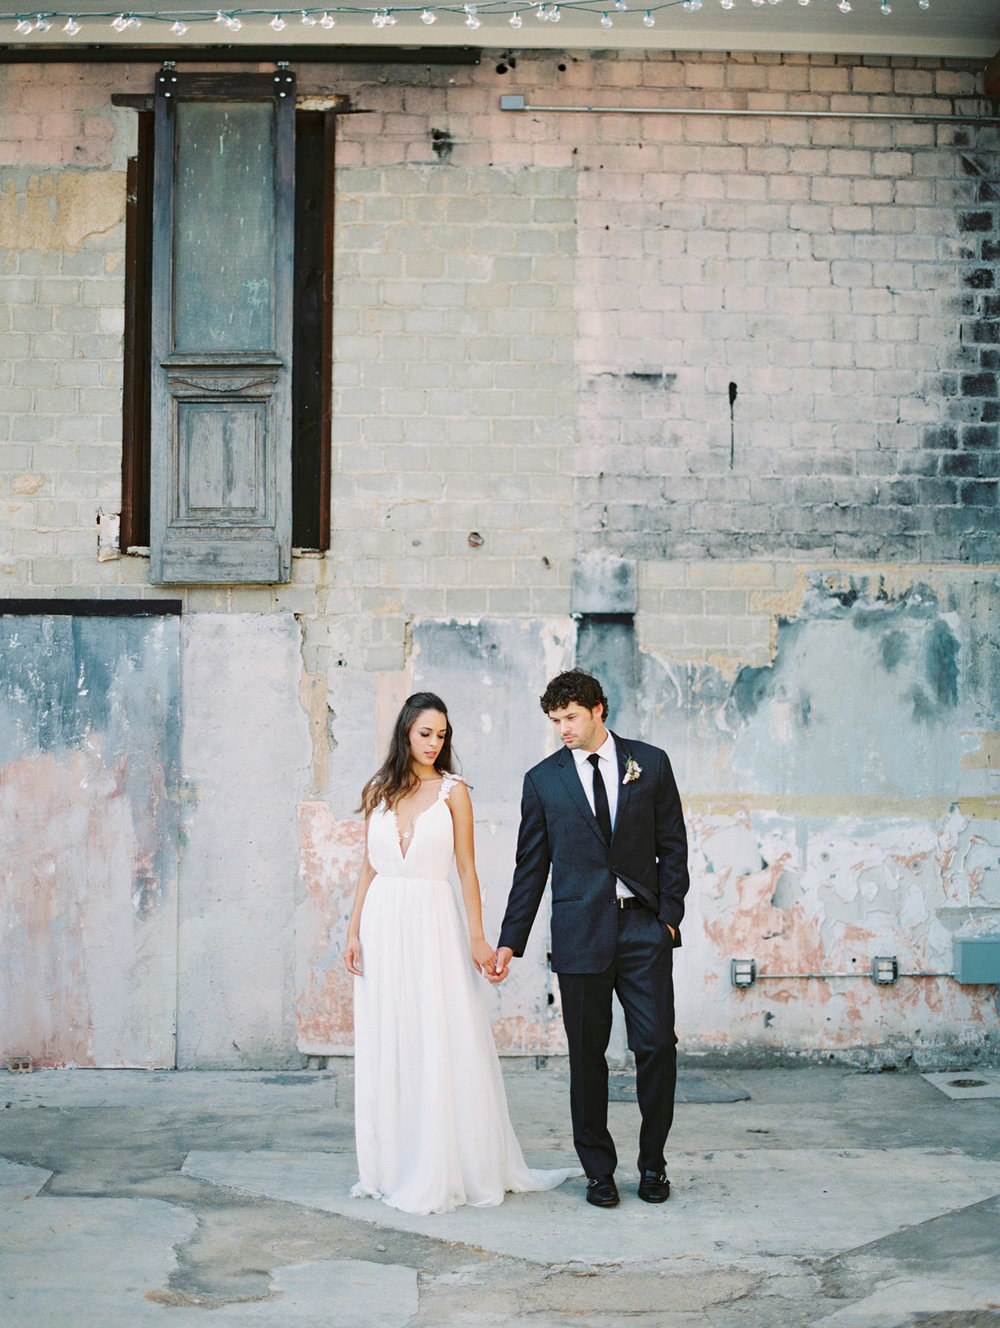 Bride and groom at Post River East in Fort Worth